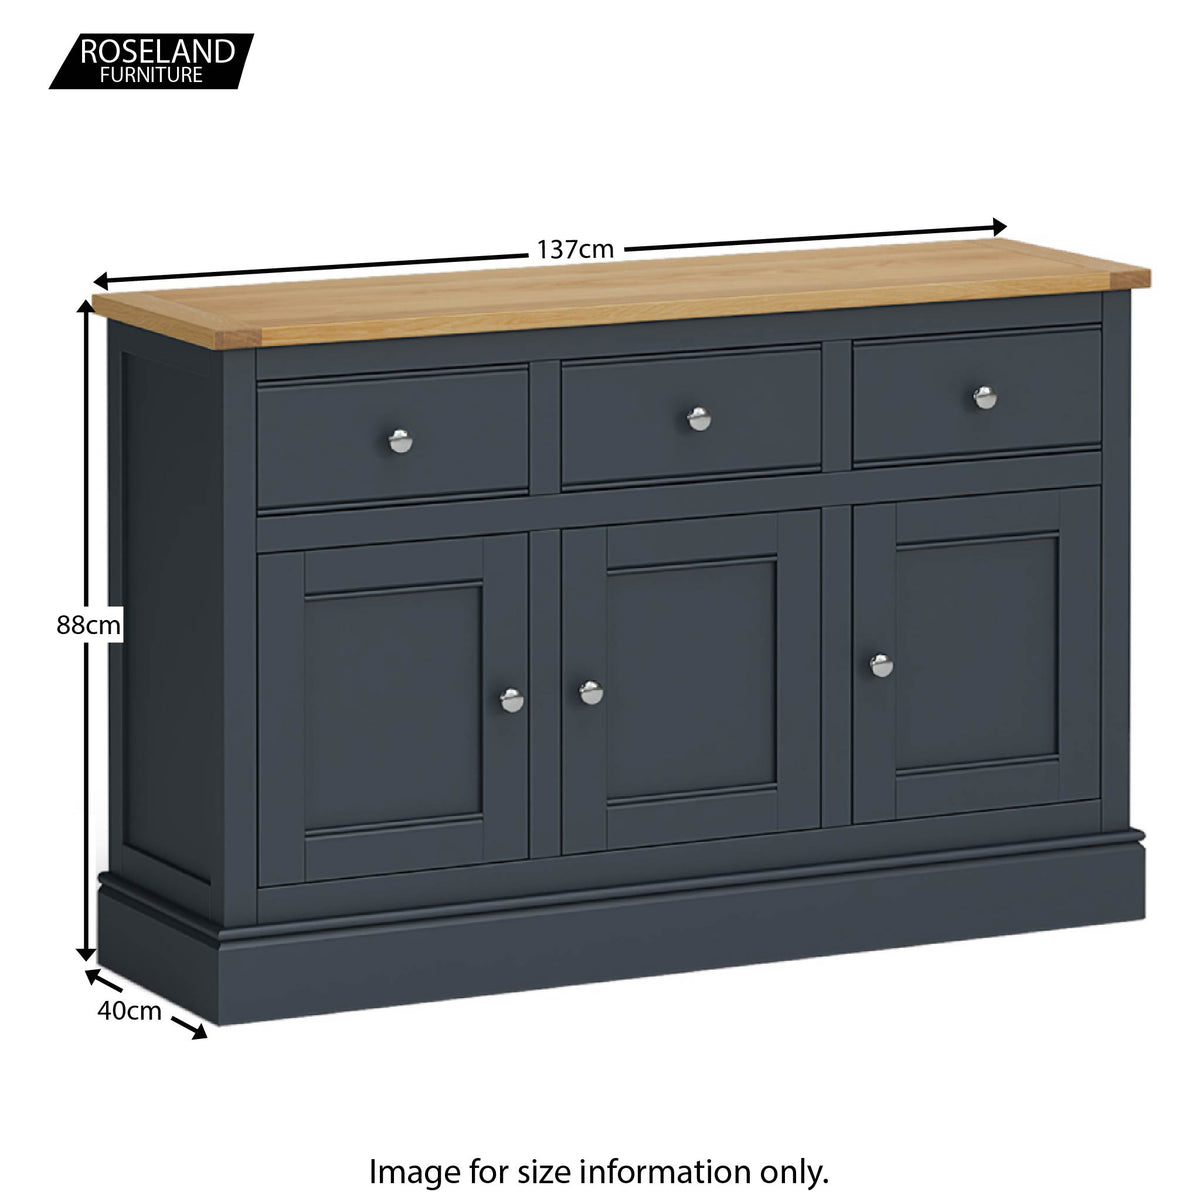 Chichester Large Sideboard in Charcoal - Size Guide